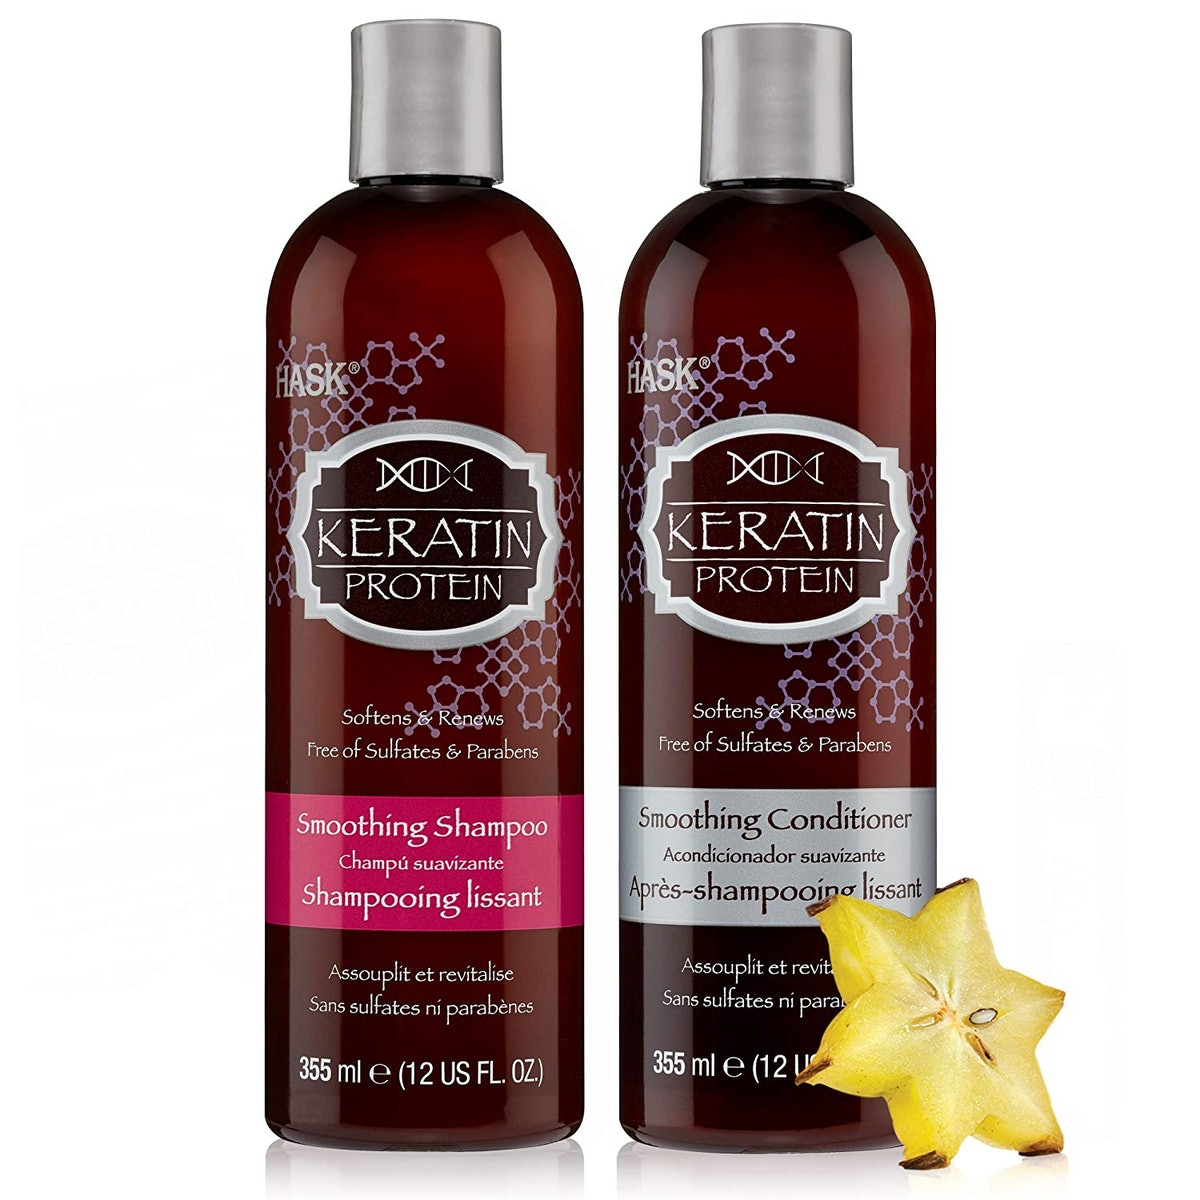 Hask Keratin Protein Shampoo and Conditioner